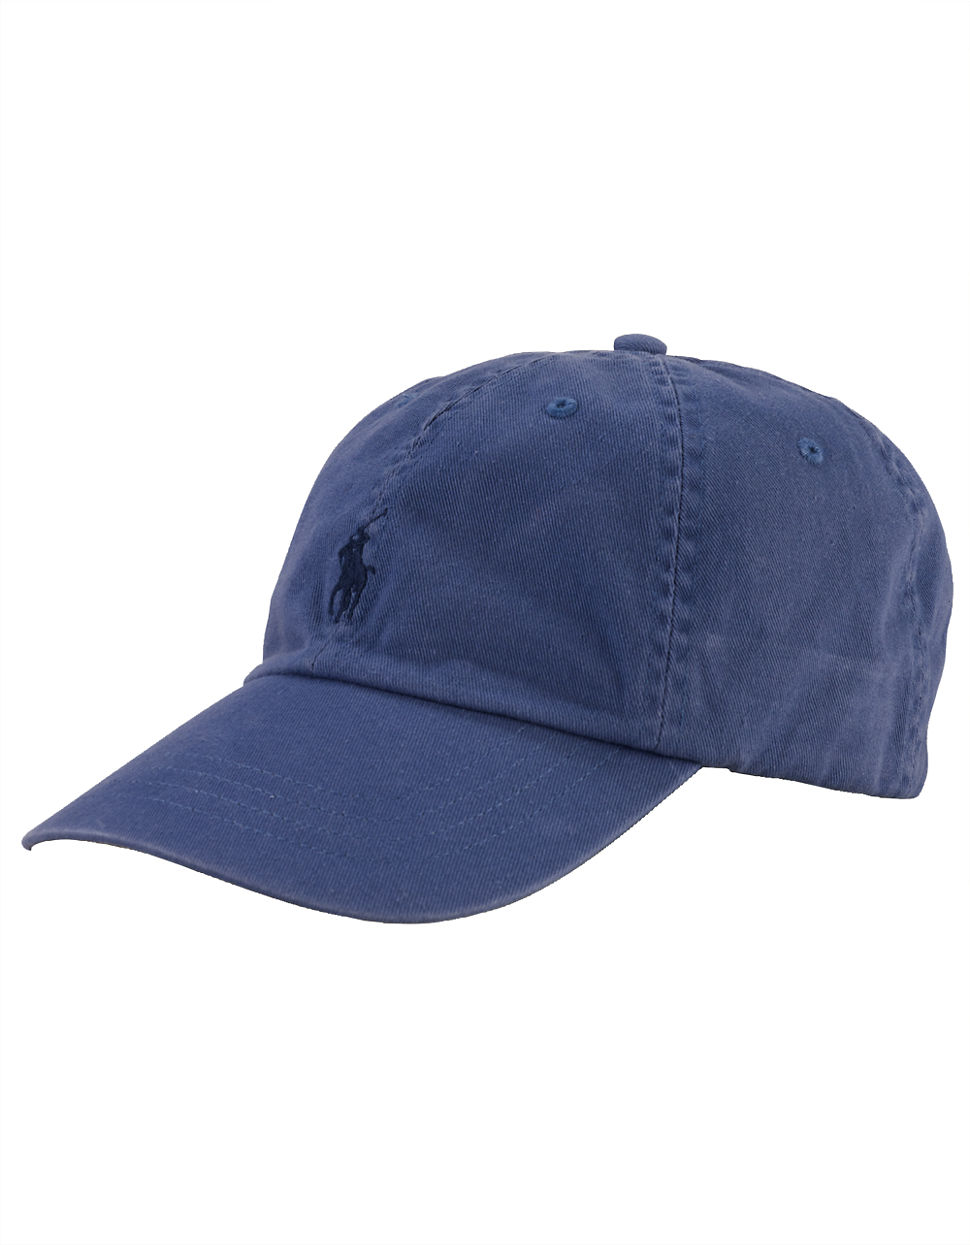 polo ralph polo player hat in blue lyst